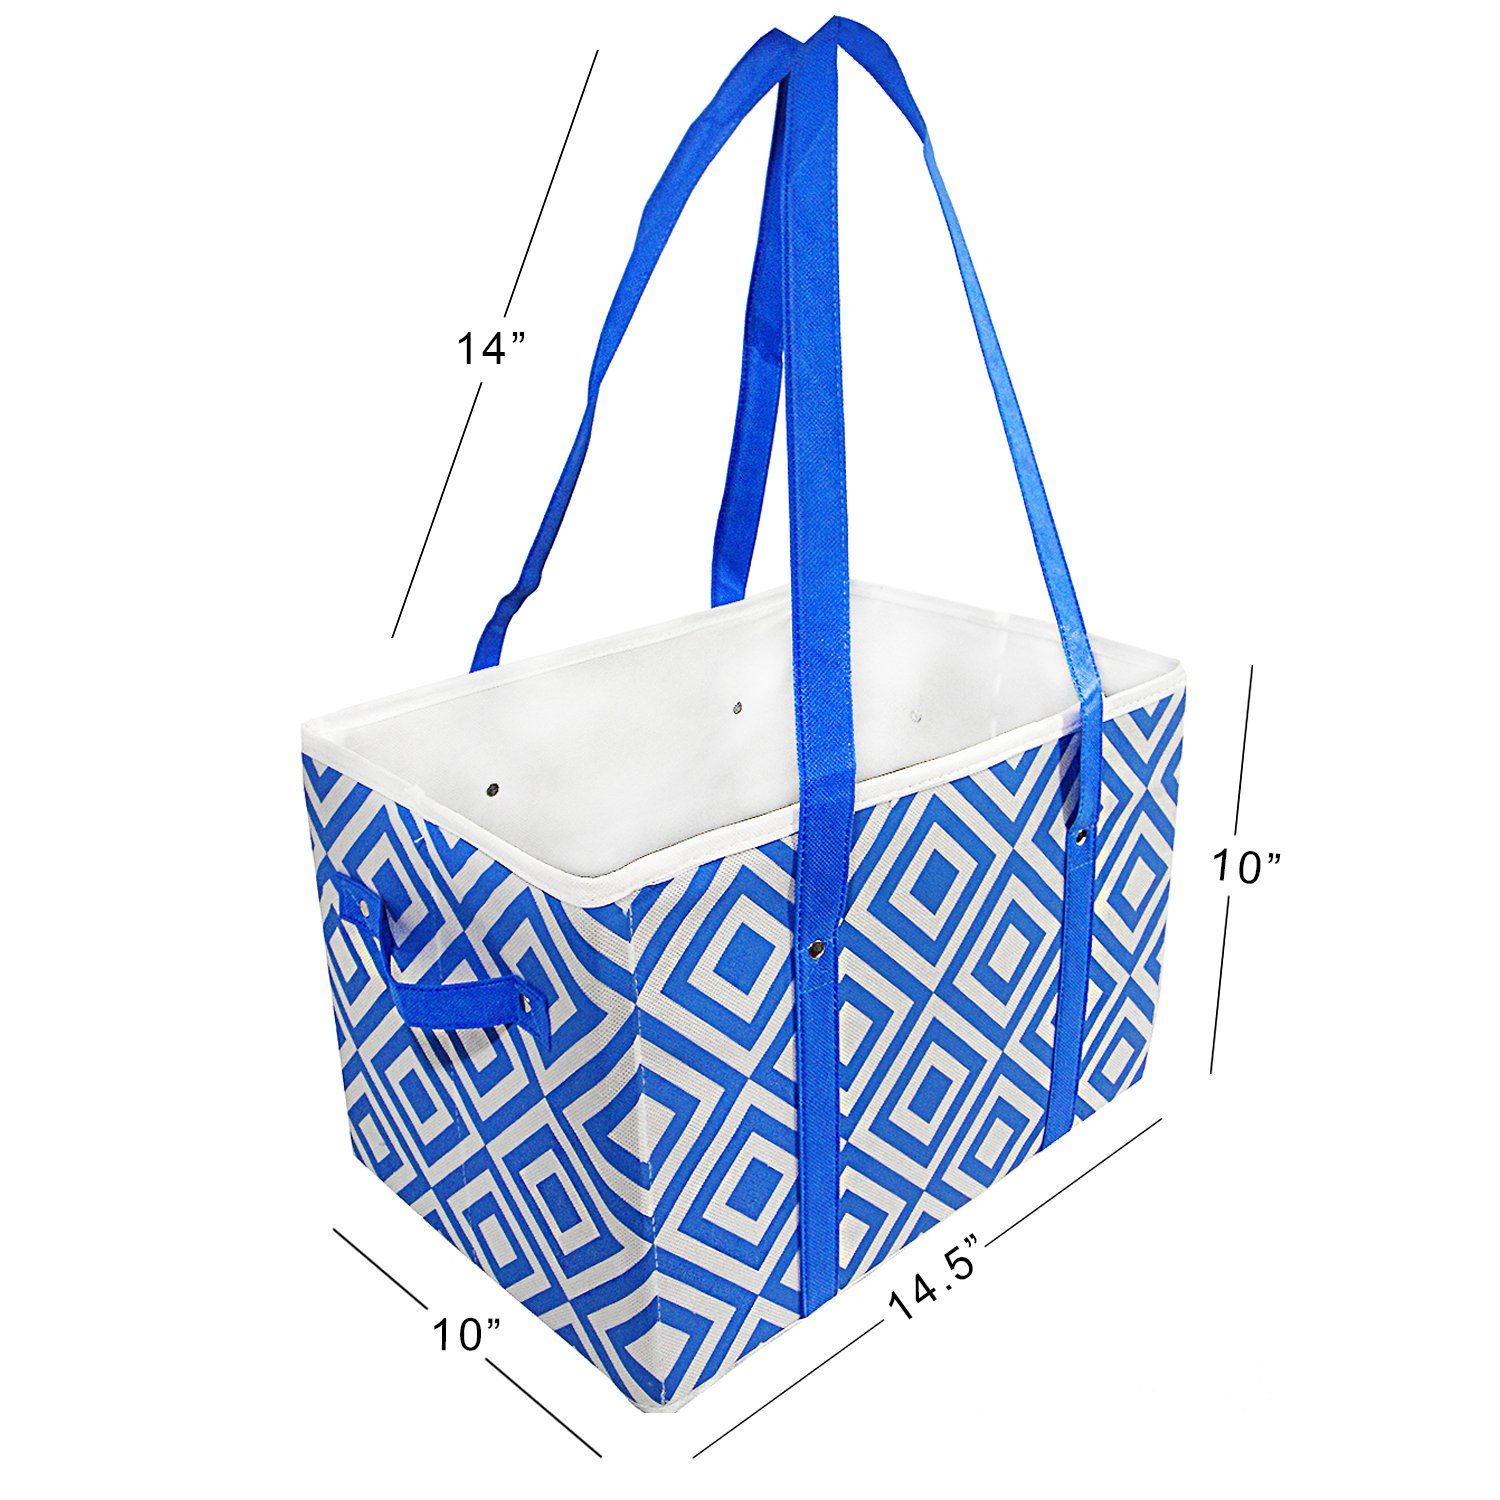 Hello Laura - Insulated Grocery Bag Box, Foldable Food Carrier Storage, Extra Large, Extra Durable, Hardened Bottom | 2 Pack Blue & Light Grey